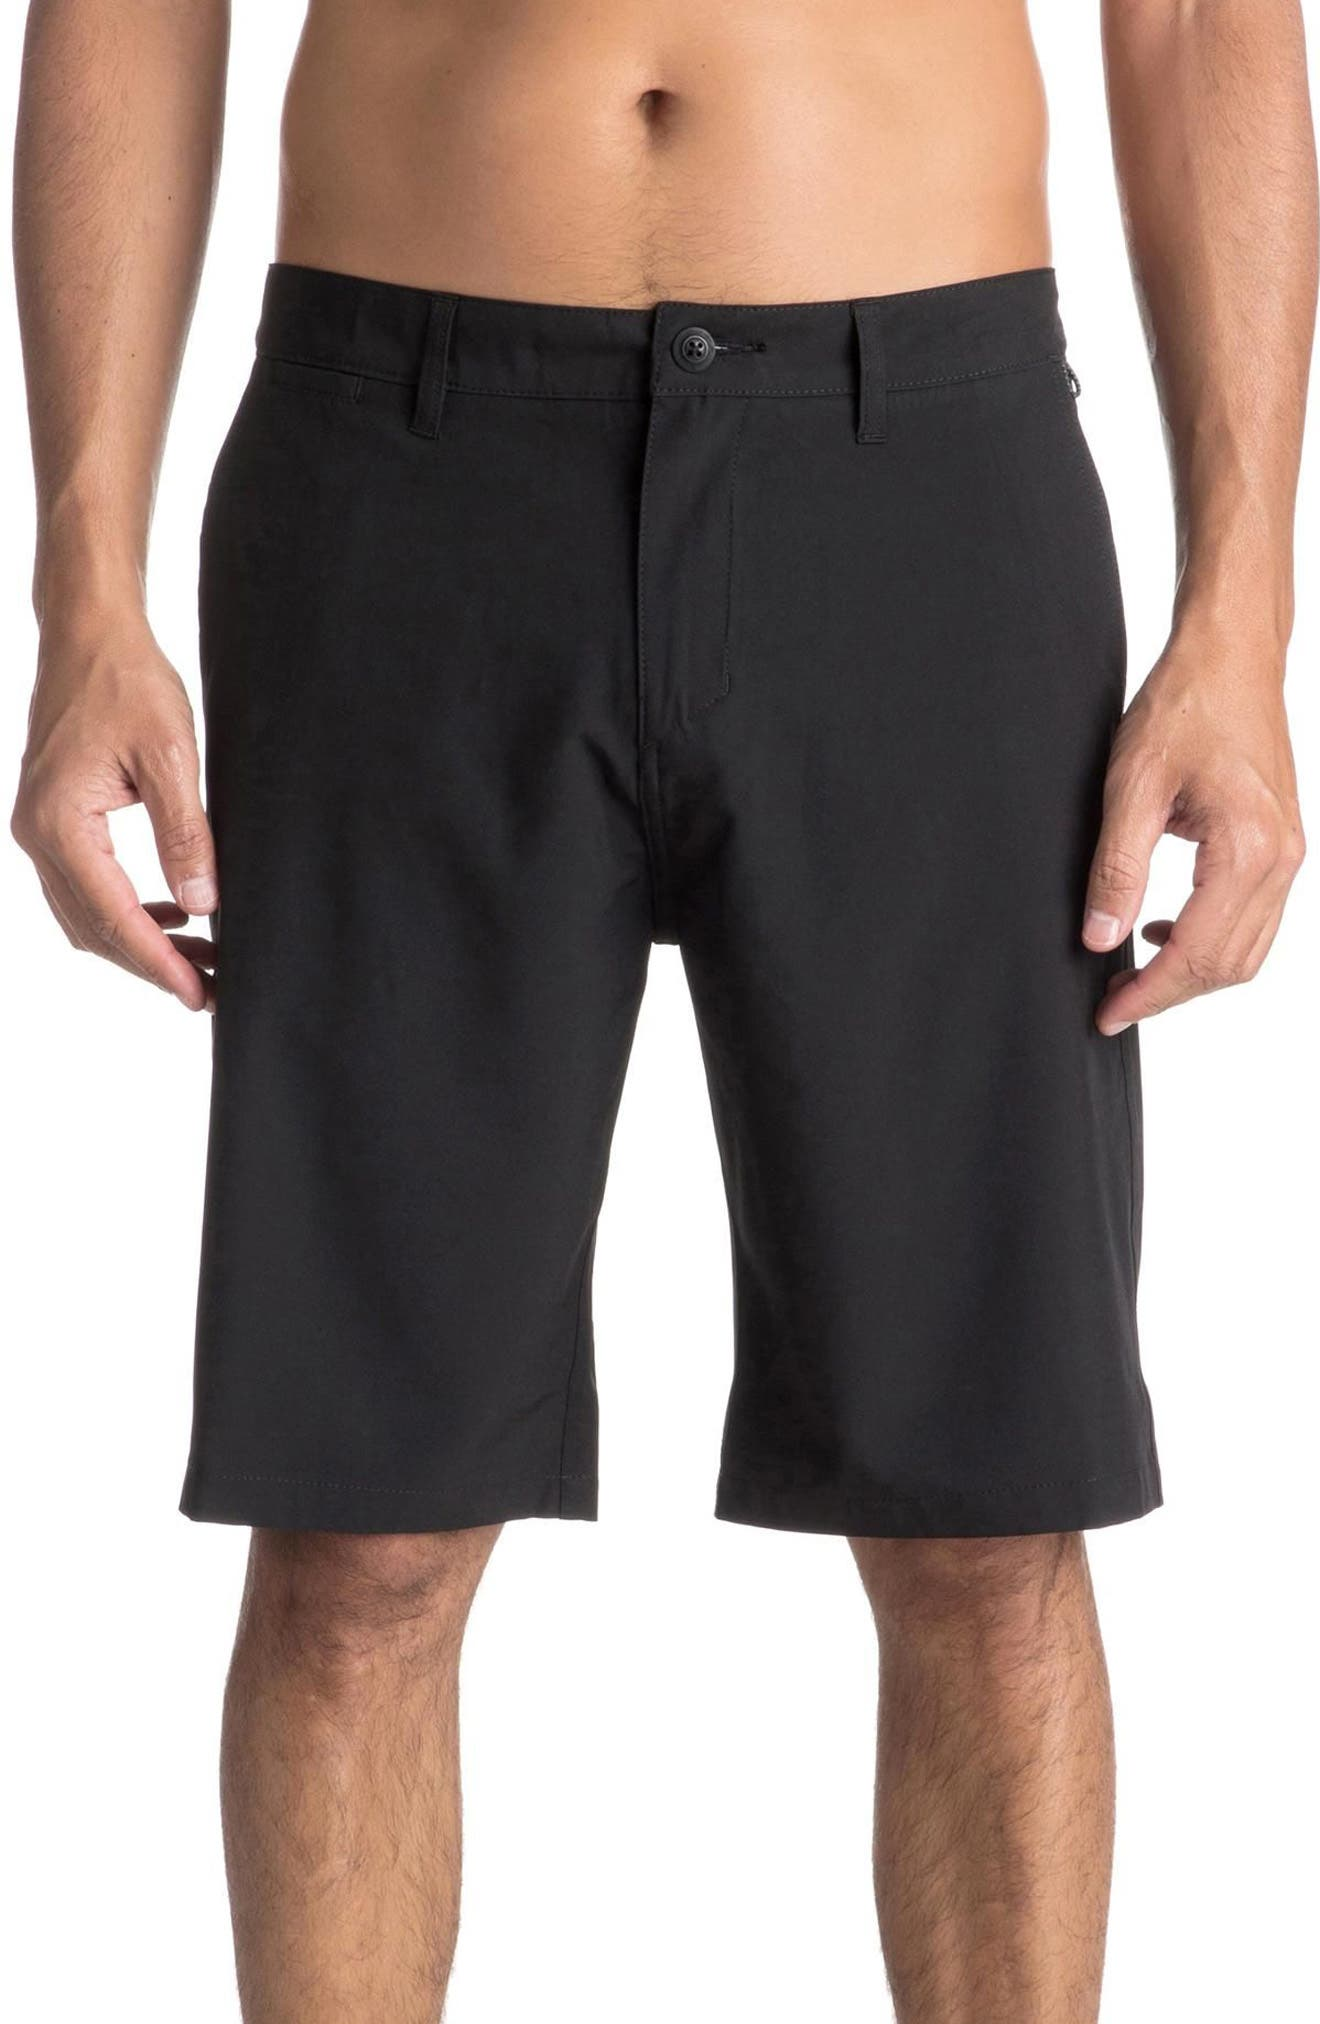 Union Amphibian Shorts,                         Main,                         color, 002